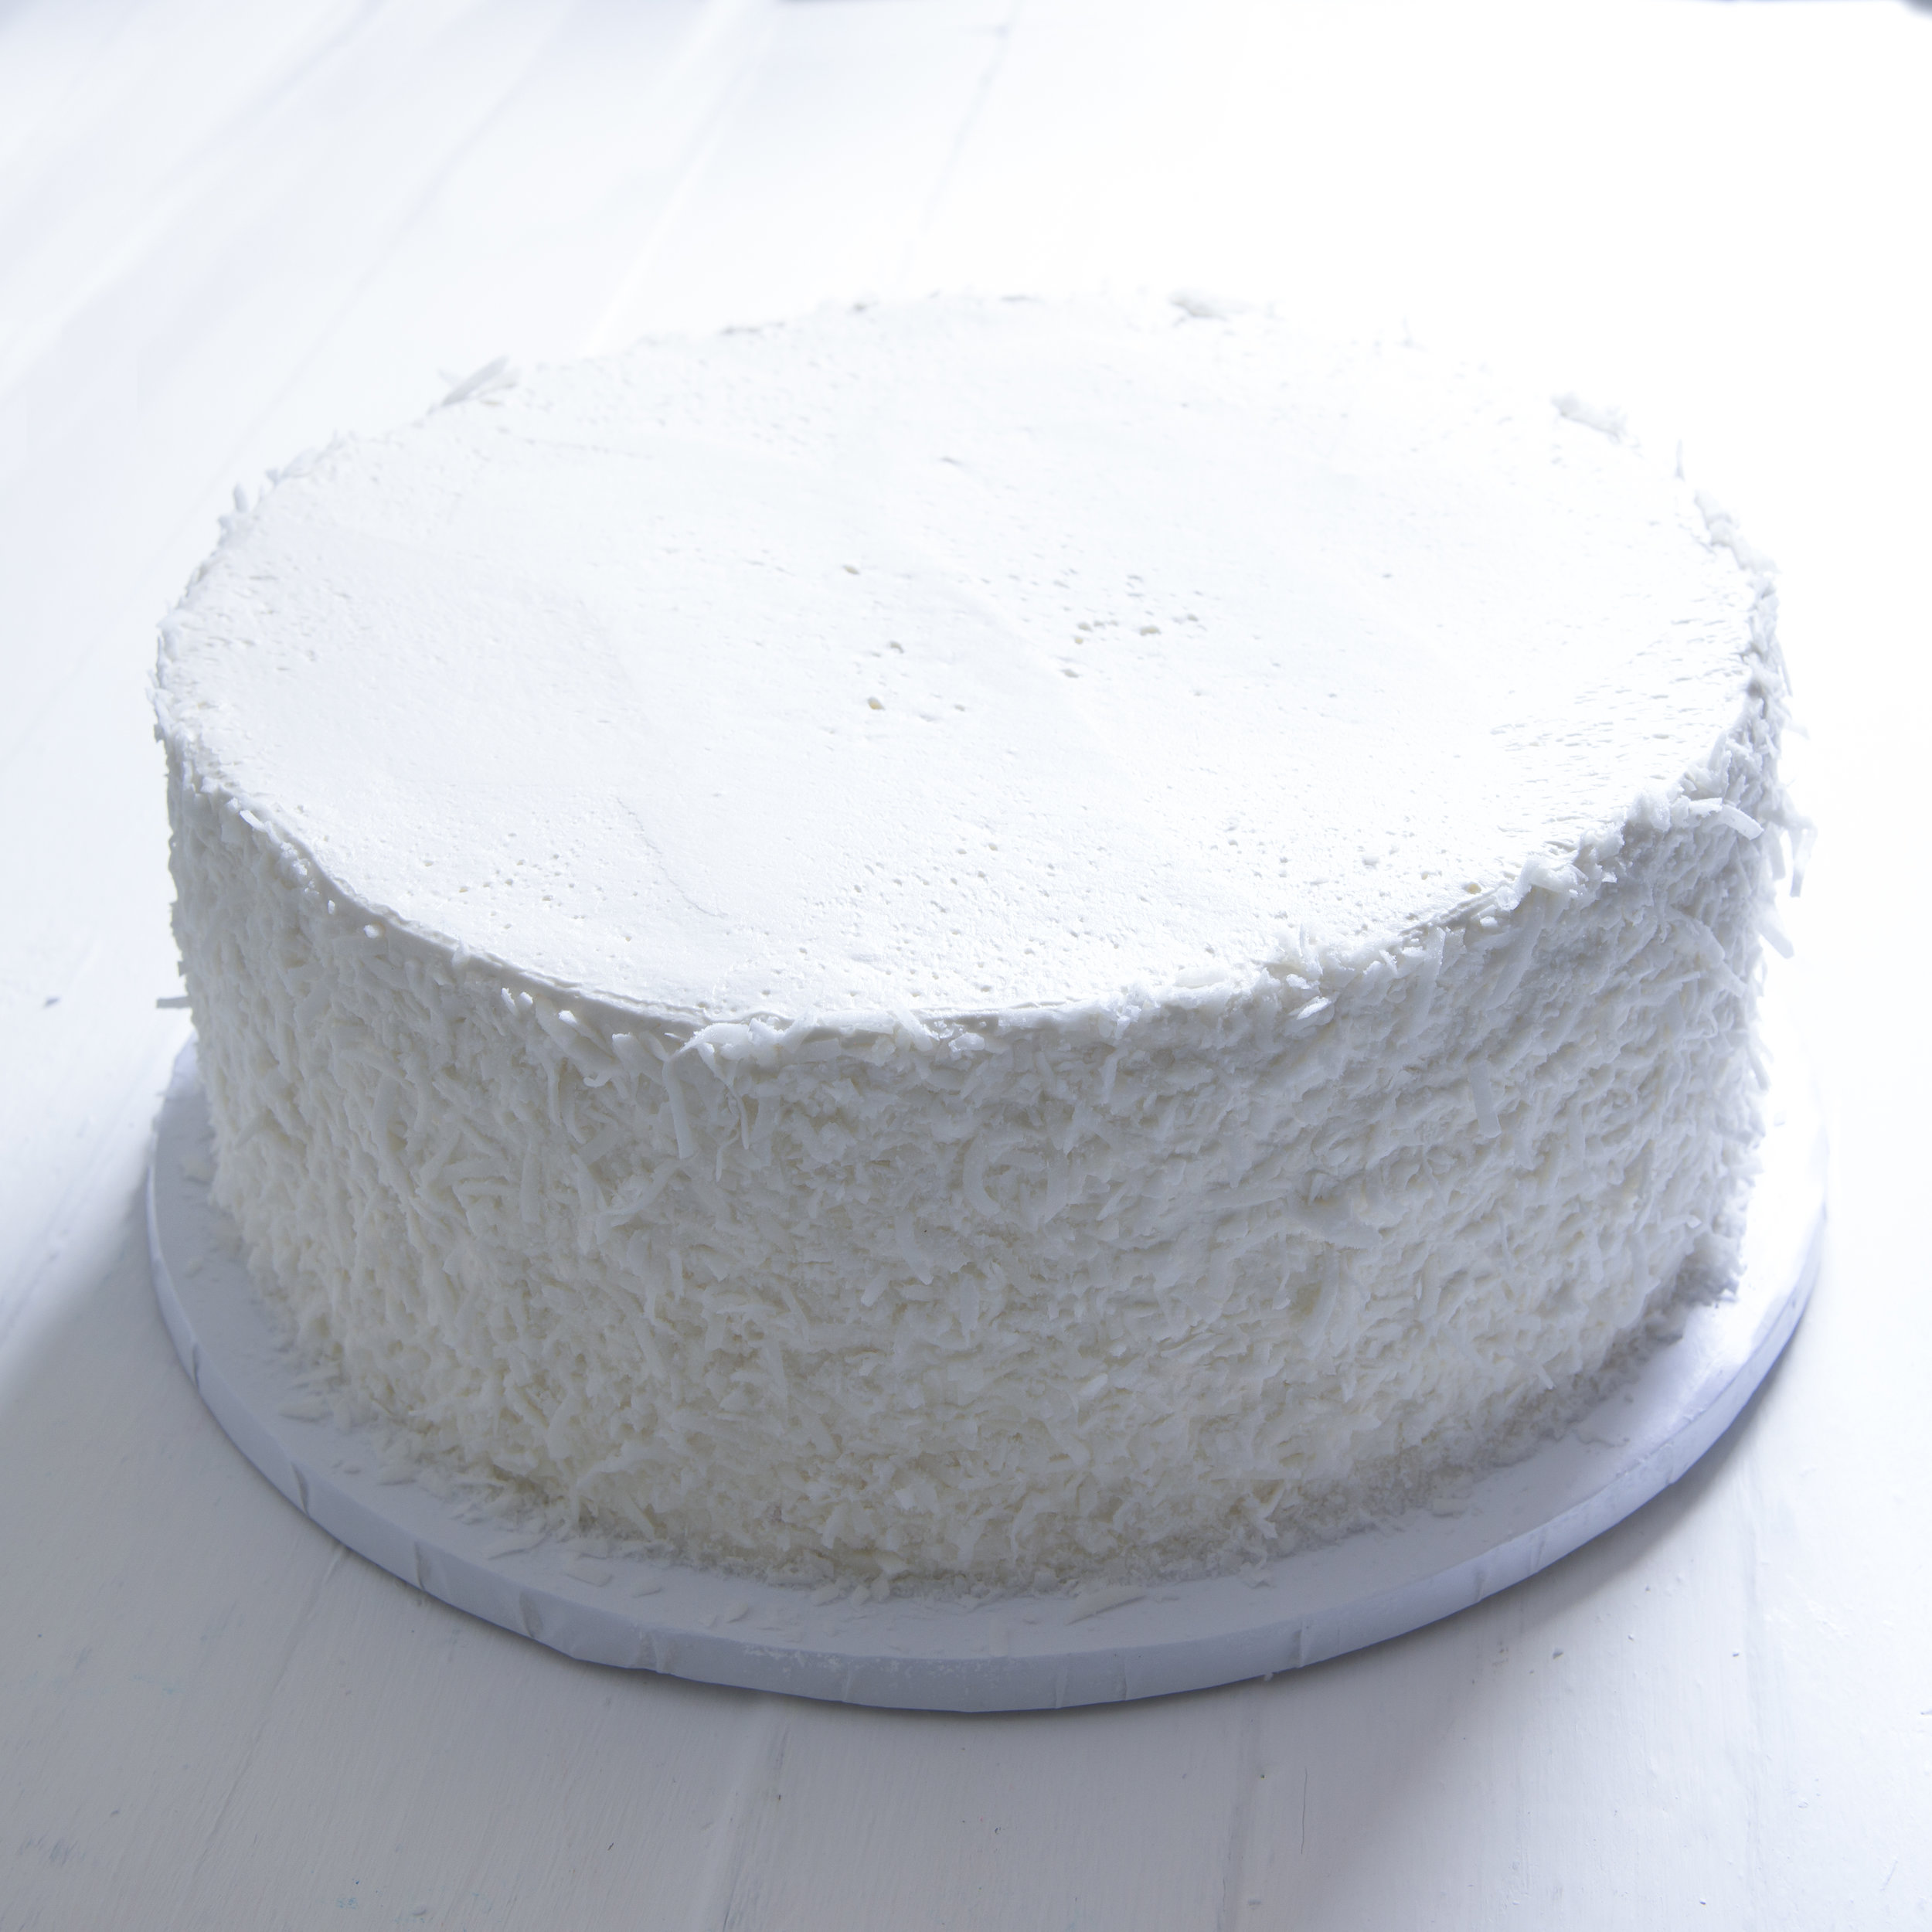 Snowball - Vanilla cake, filled with coconut buttercream, frosted with vanilla buttercream, sides covered in fresh coconut.6